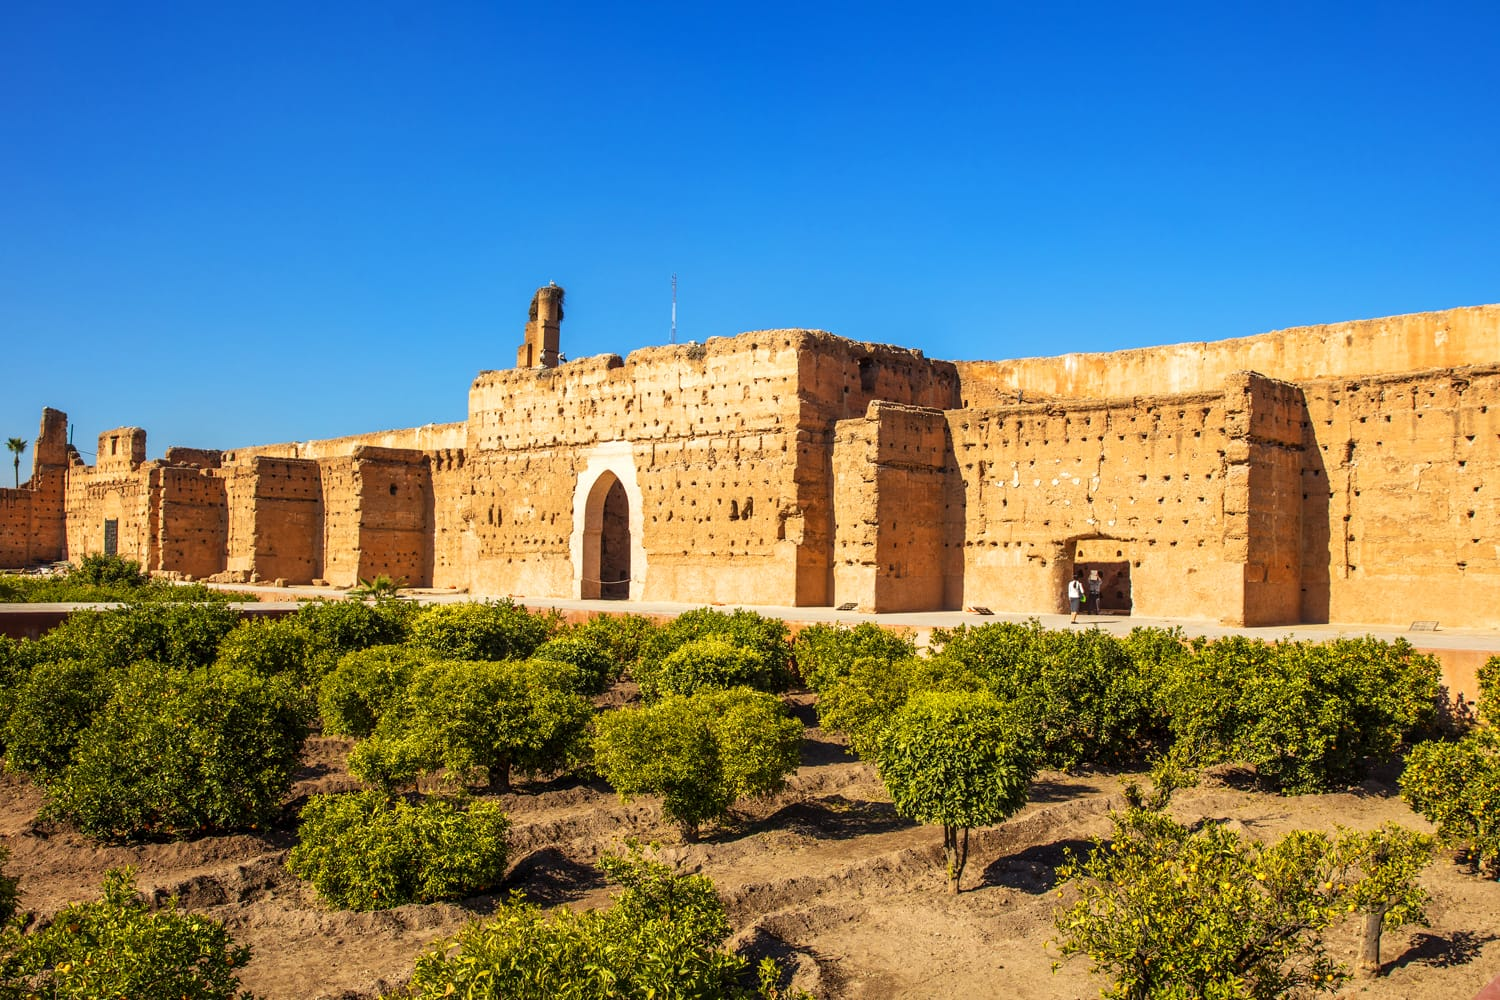 El Badi Palace is a ruined palace located in Marrakesh, Morocco